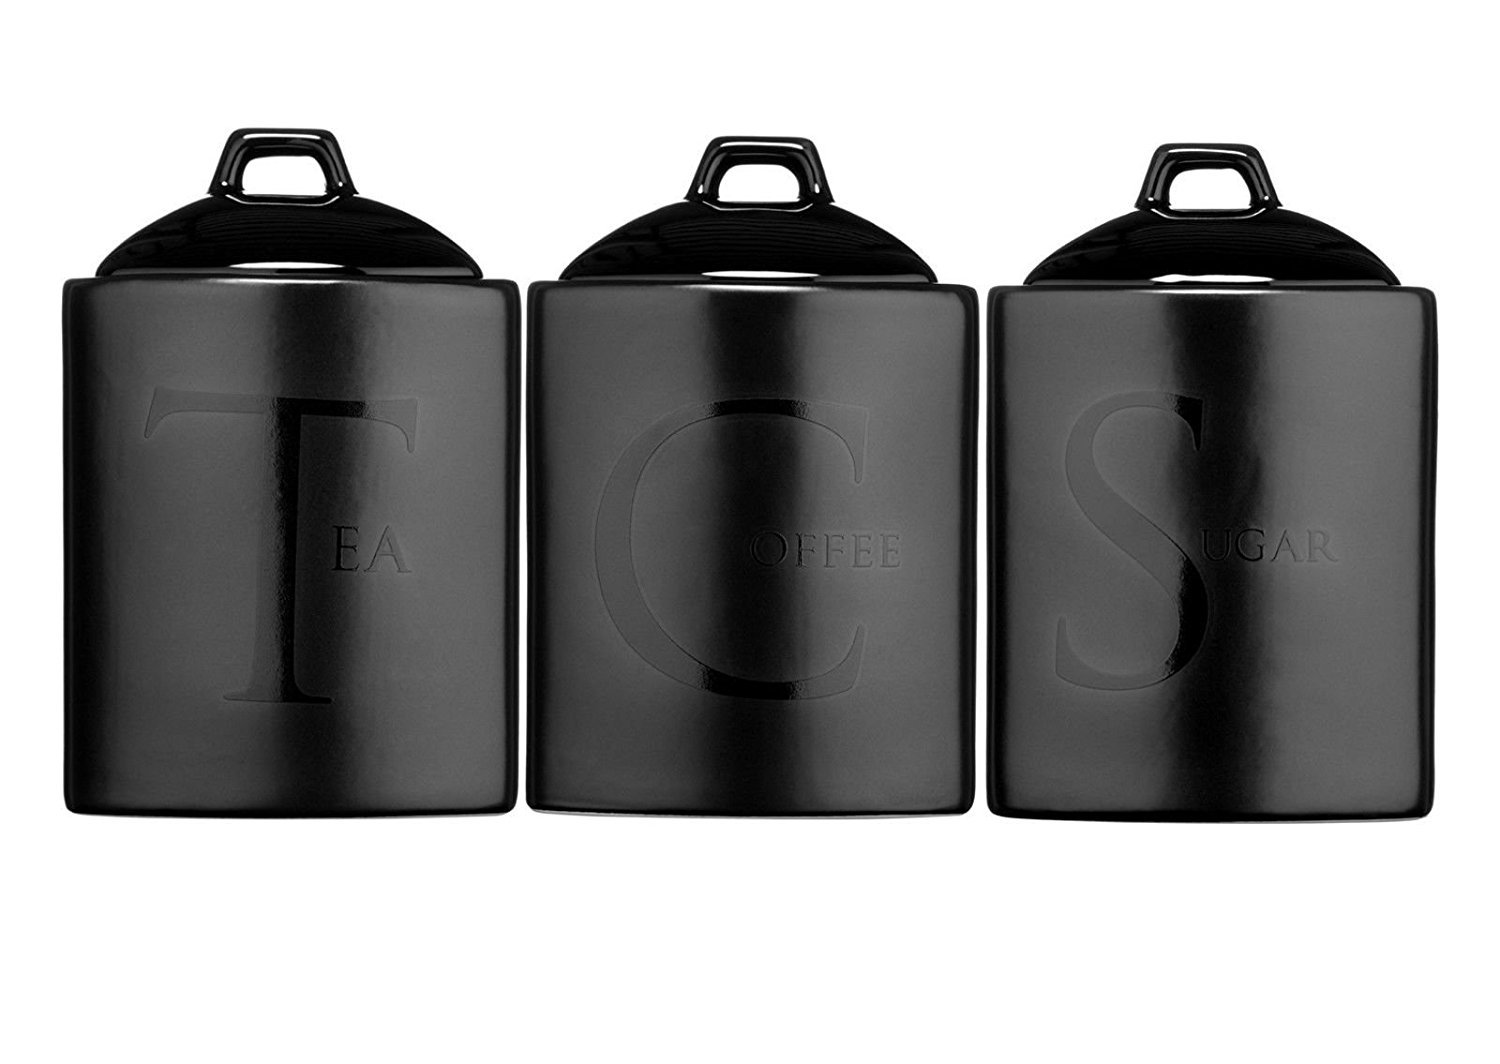 Premier Housewares Kitchen Cannisters With Black Text: Tea, Coffee, Sugar